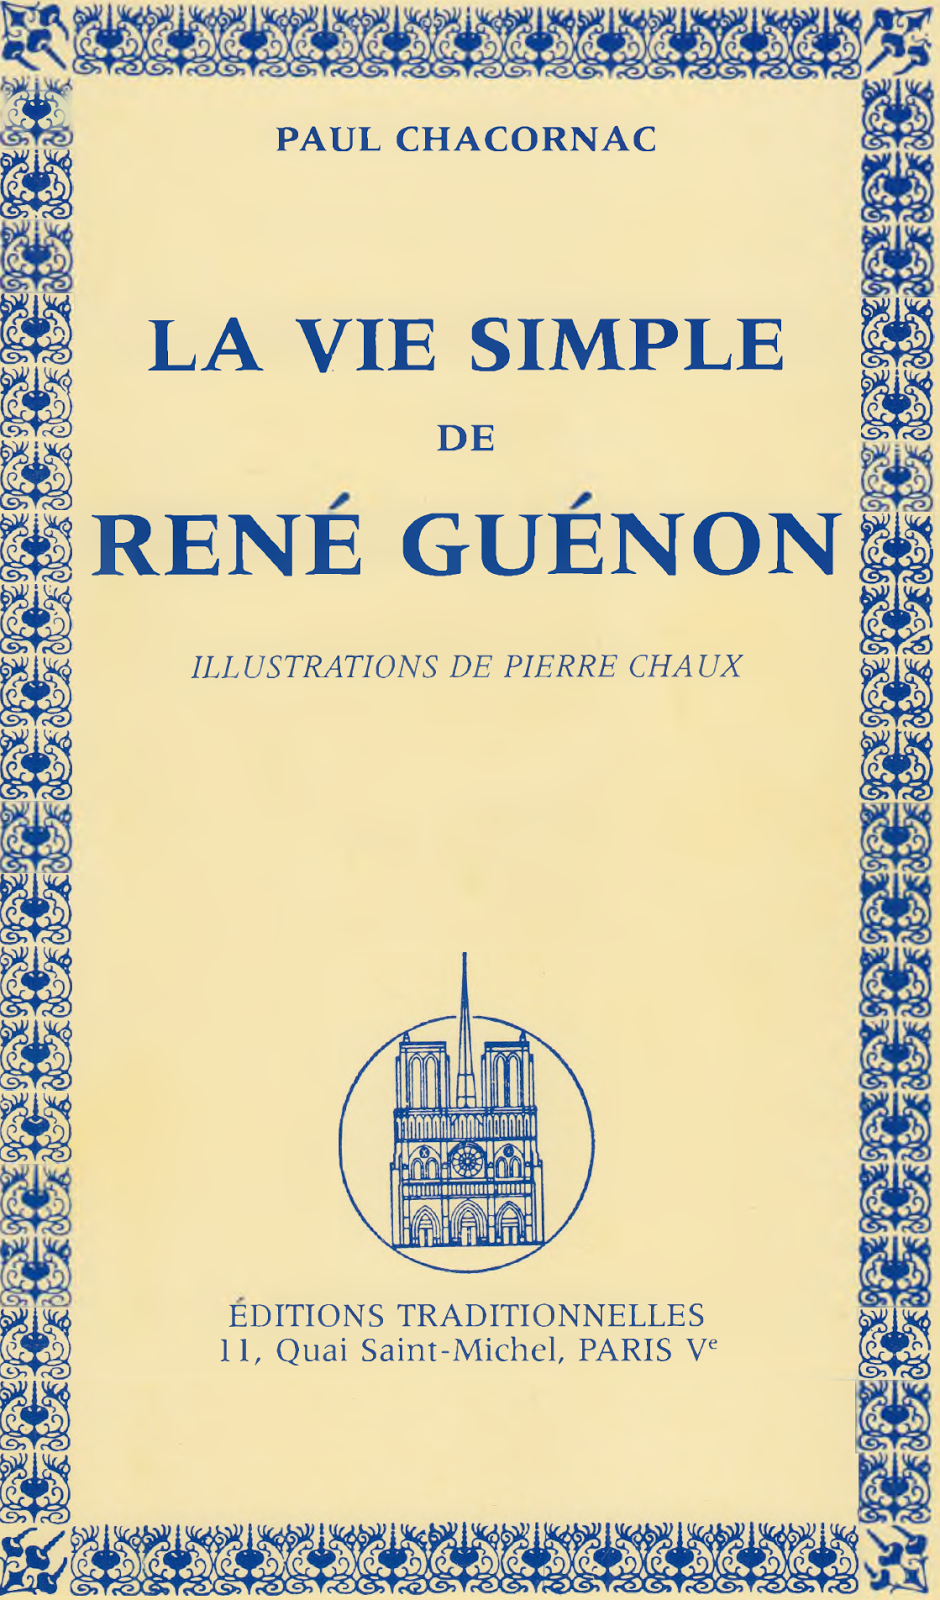 Paul Chacornac - La vie simple de René Guénon - Éditions traditionnelles